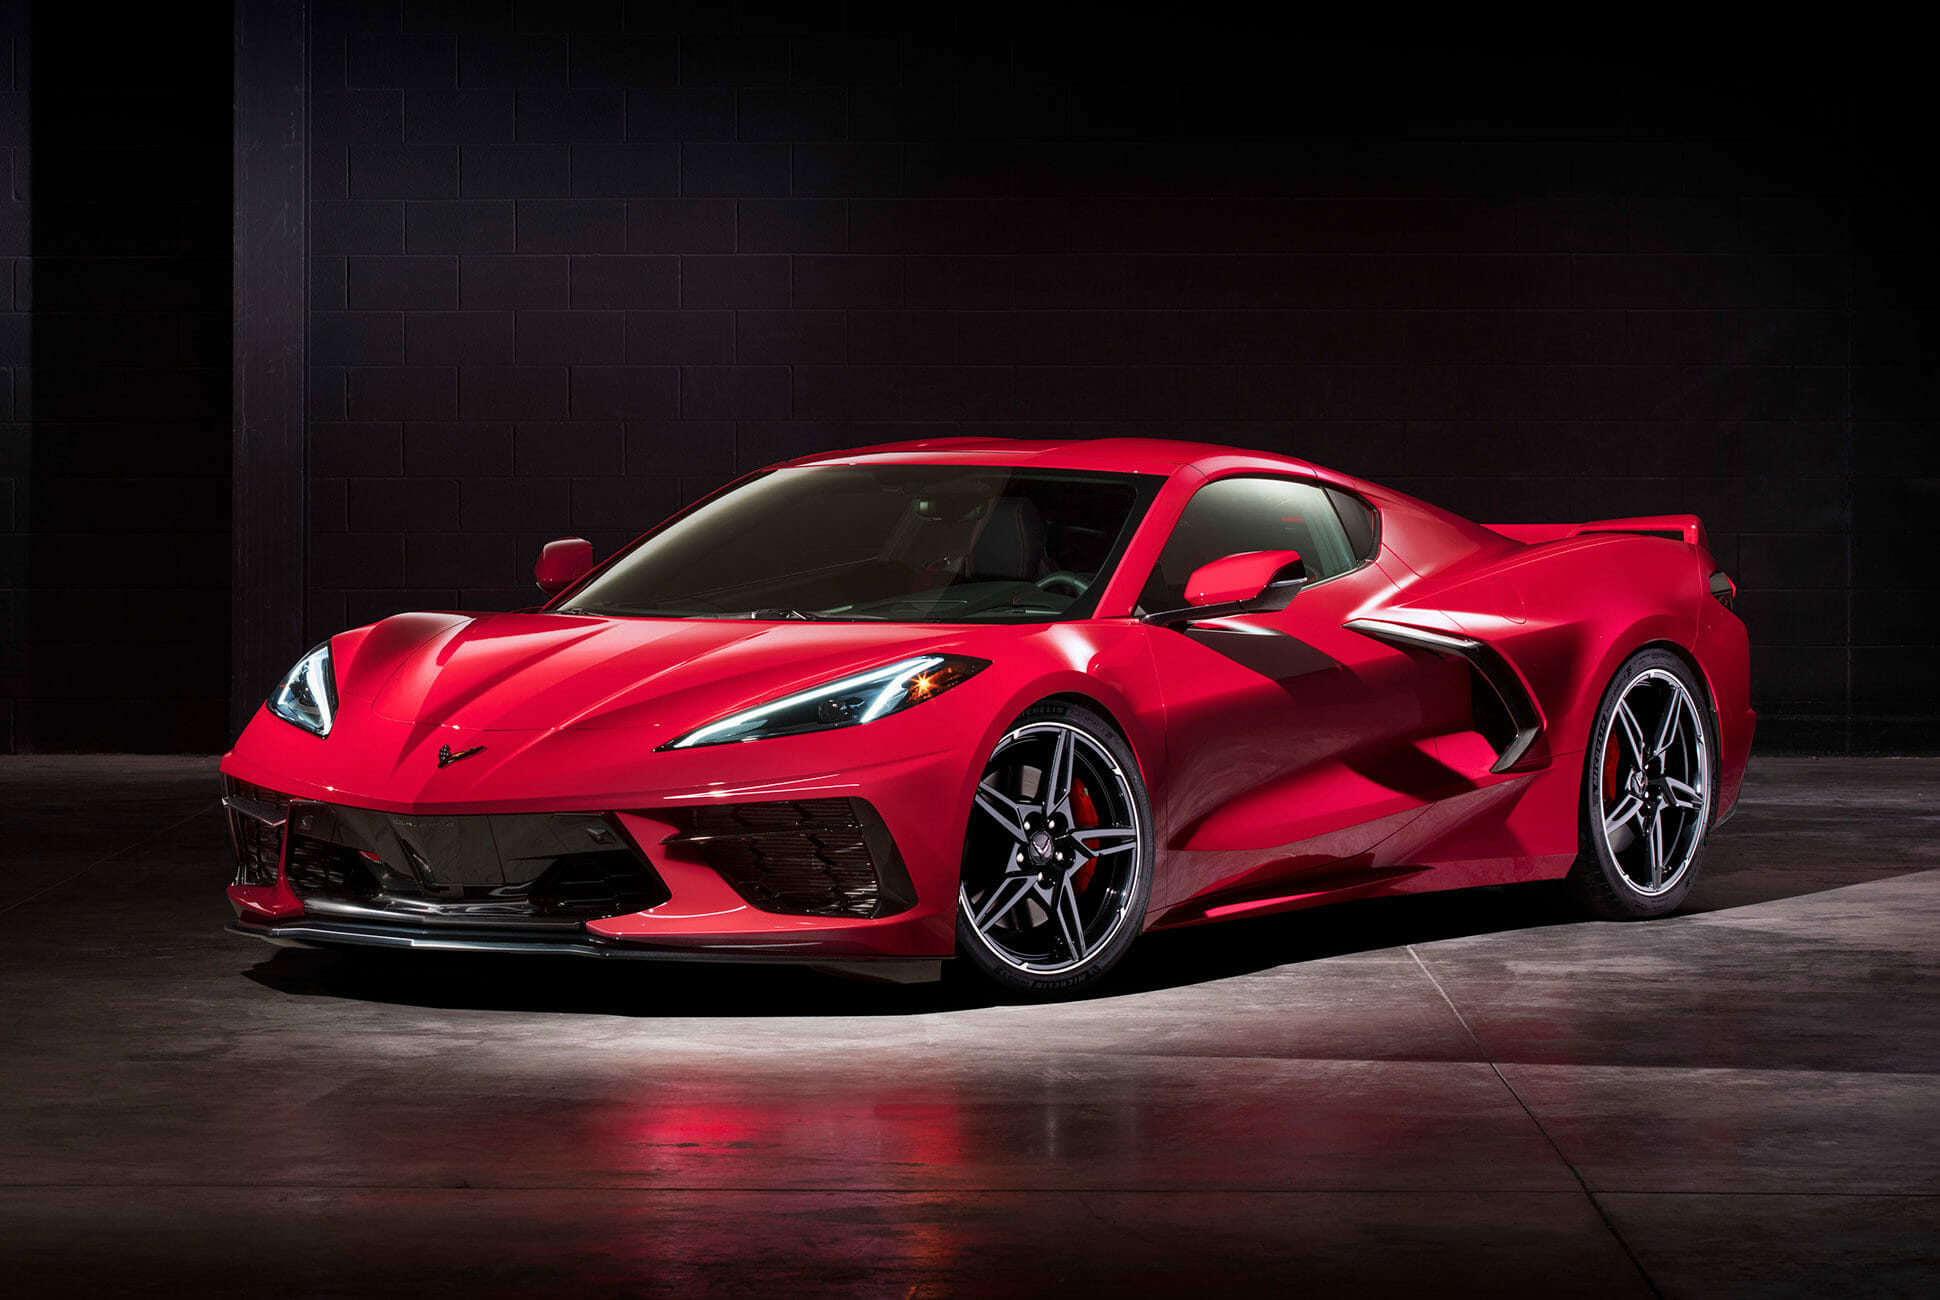 87 The Best 2020 Chevy Corvette Stingray Images